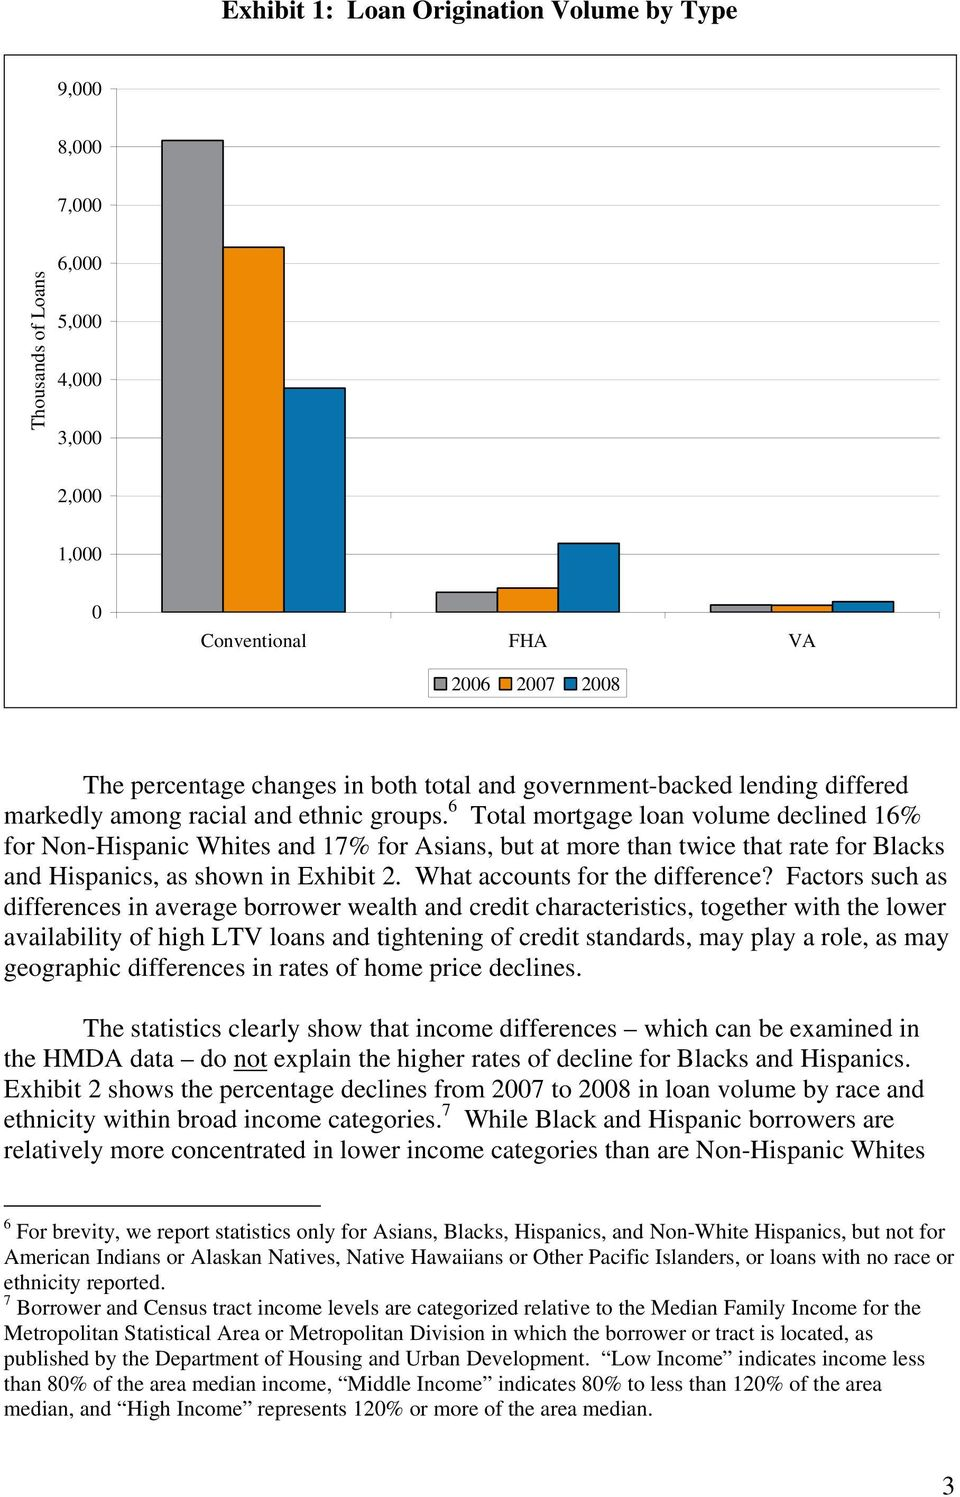 6 Total mortgage loan volume declined 16% for Non-Hispanic Whites and 17% for Asians, but at more than twice that rate for Blacks and Hispanics, as shown in Exhibit 2.